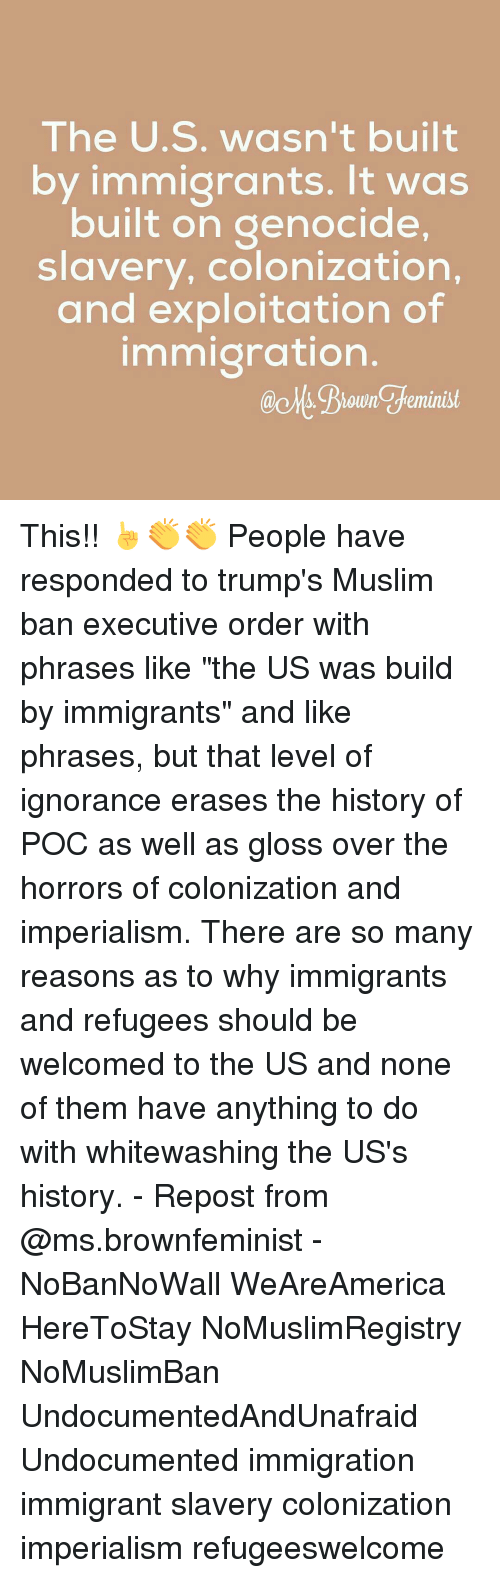 """Exploitable: The U.S. wasn't built  by immigrants. It was  built on genocide,  slavery, colonization,  and exploitation of  immigration  ao Ms. feminist This!! ☝️👏👏 People have responded to trump's Muslim ban executive order with phrases like """"the US was build by immigrants"""" and like phrases, but that level of ignorance erases the history of POC as well as gloss over the horrors of colonization and imperialism. There are so many reasons as to why immigrants and refugees should be welcomed to the US and none of them have anything to do with whitewashing the US's history. - Repost from @ms.brownfeminist - NoBanNoWall WeAreAmerica HereToStay NoMuslimRegistry NoMuslimBan UndocumentedAndUnafraid Undocumented immigration immigrant slavery colonization imperialism refugeeswelcome"""